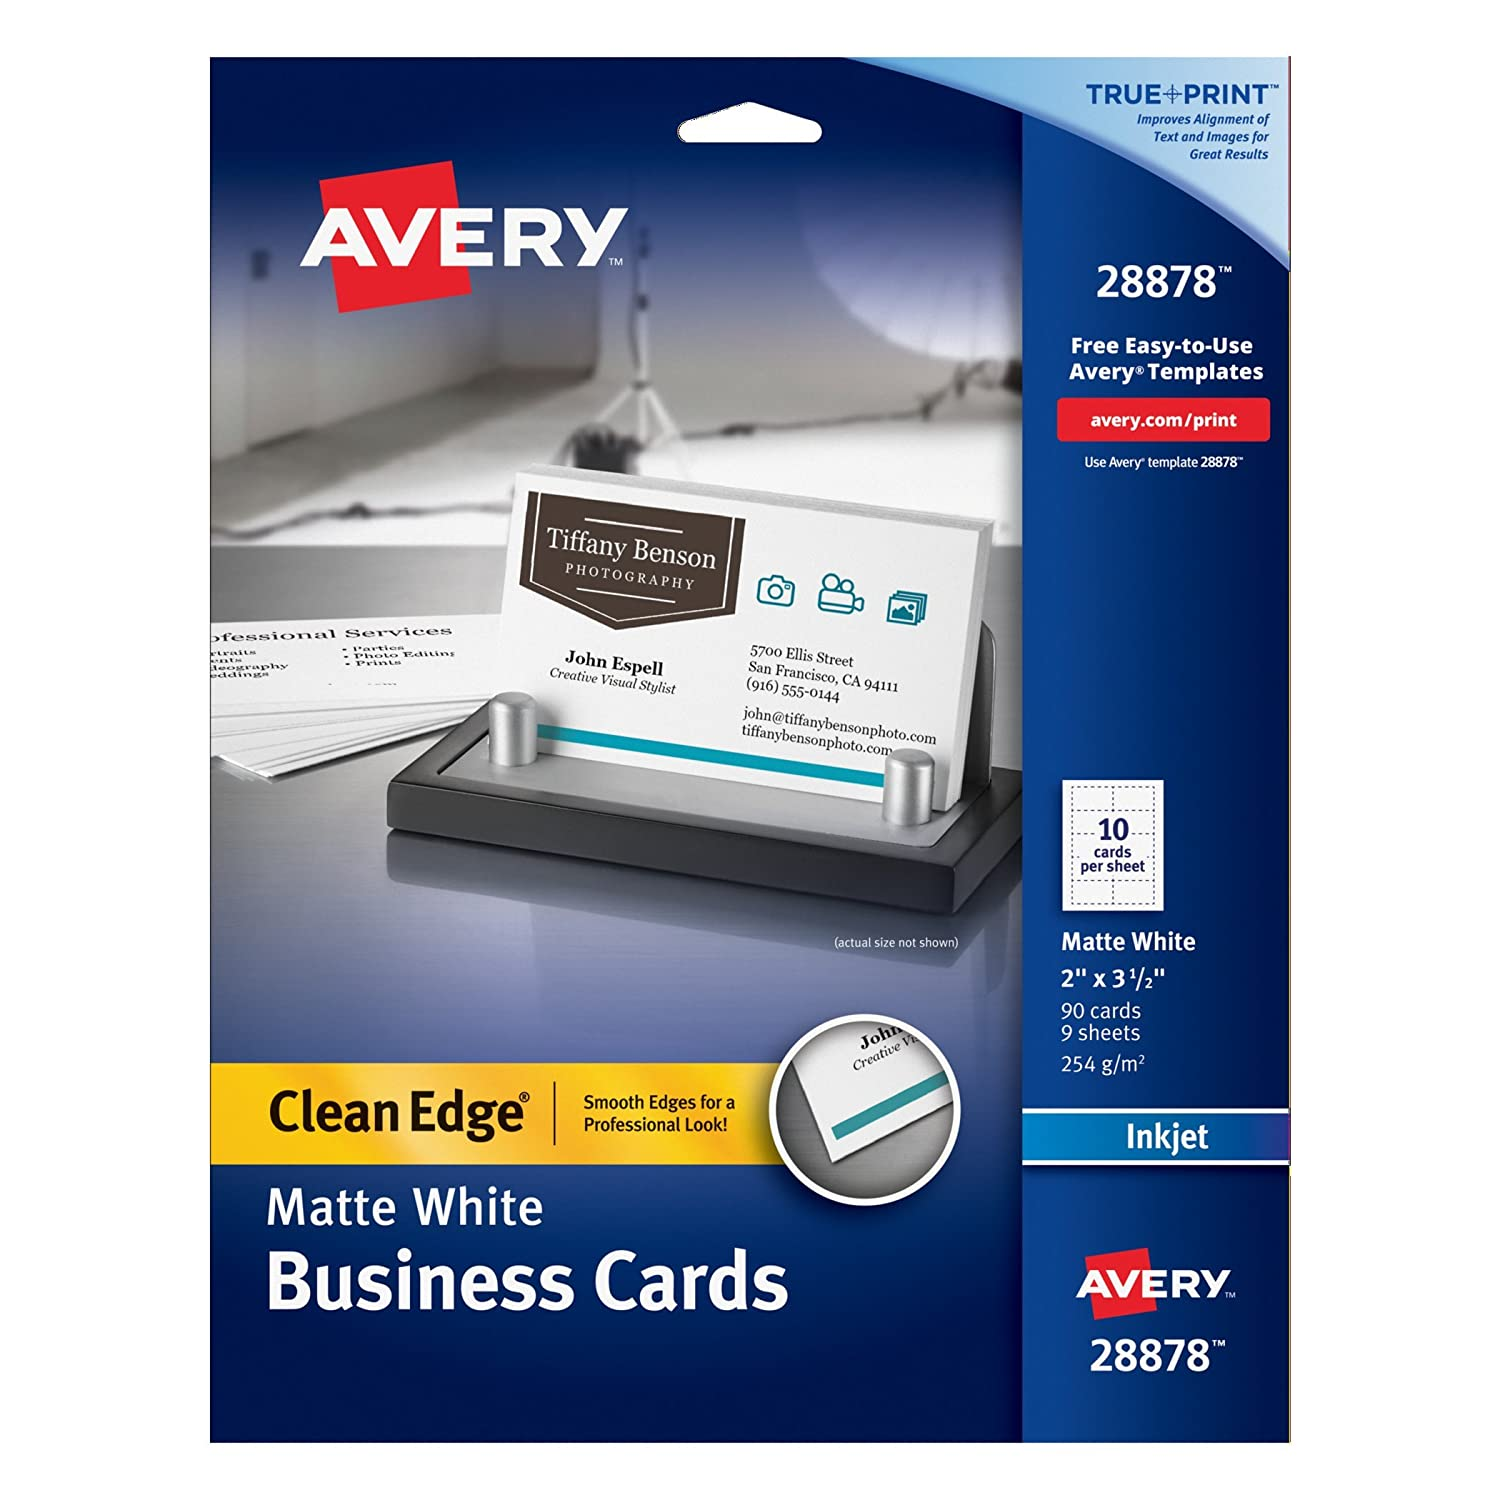 Amazoncom Avery Clean Edge Business Cards Inches X - Avery business cards templates